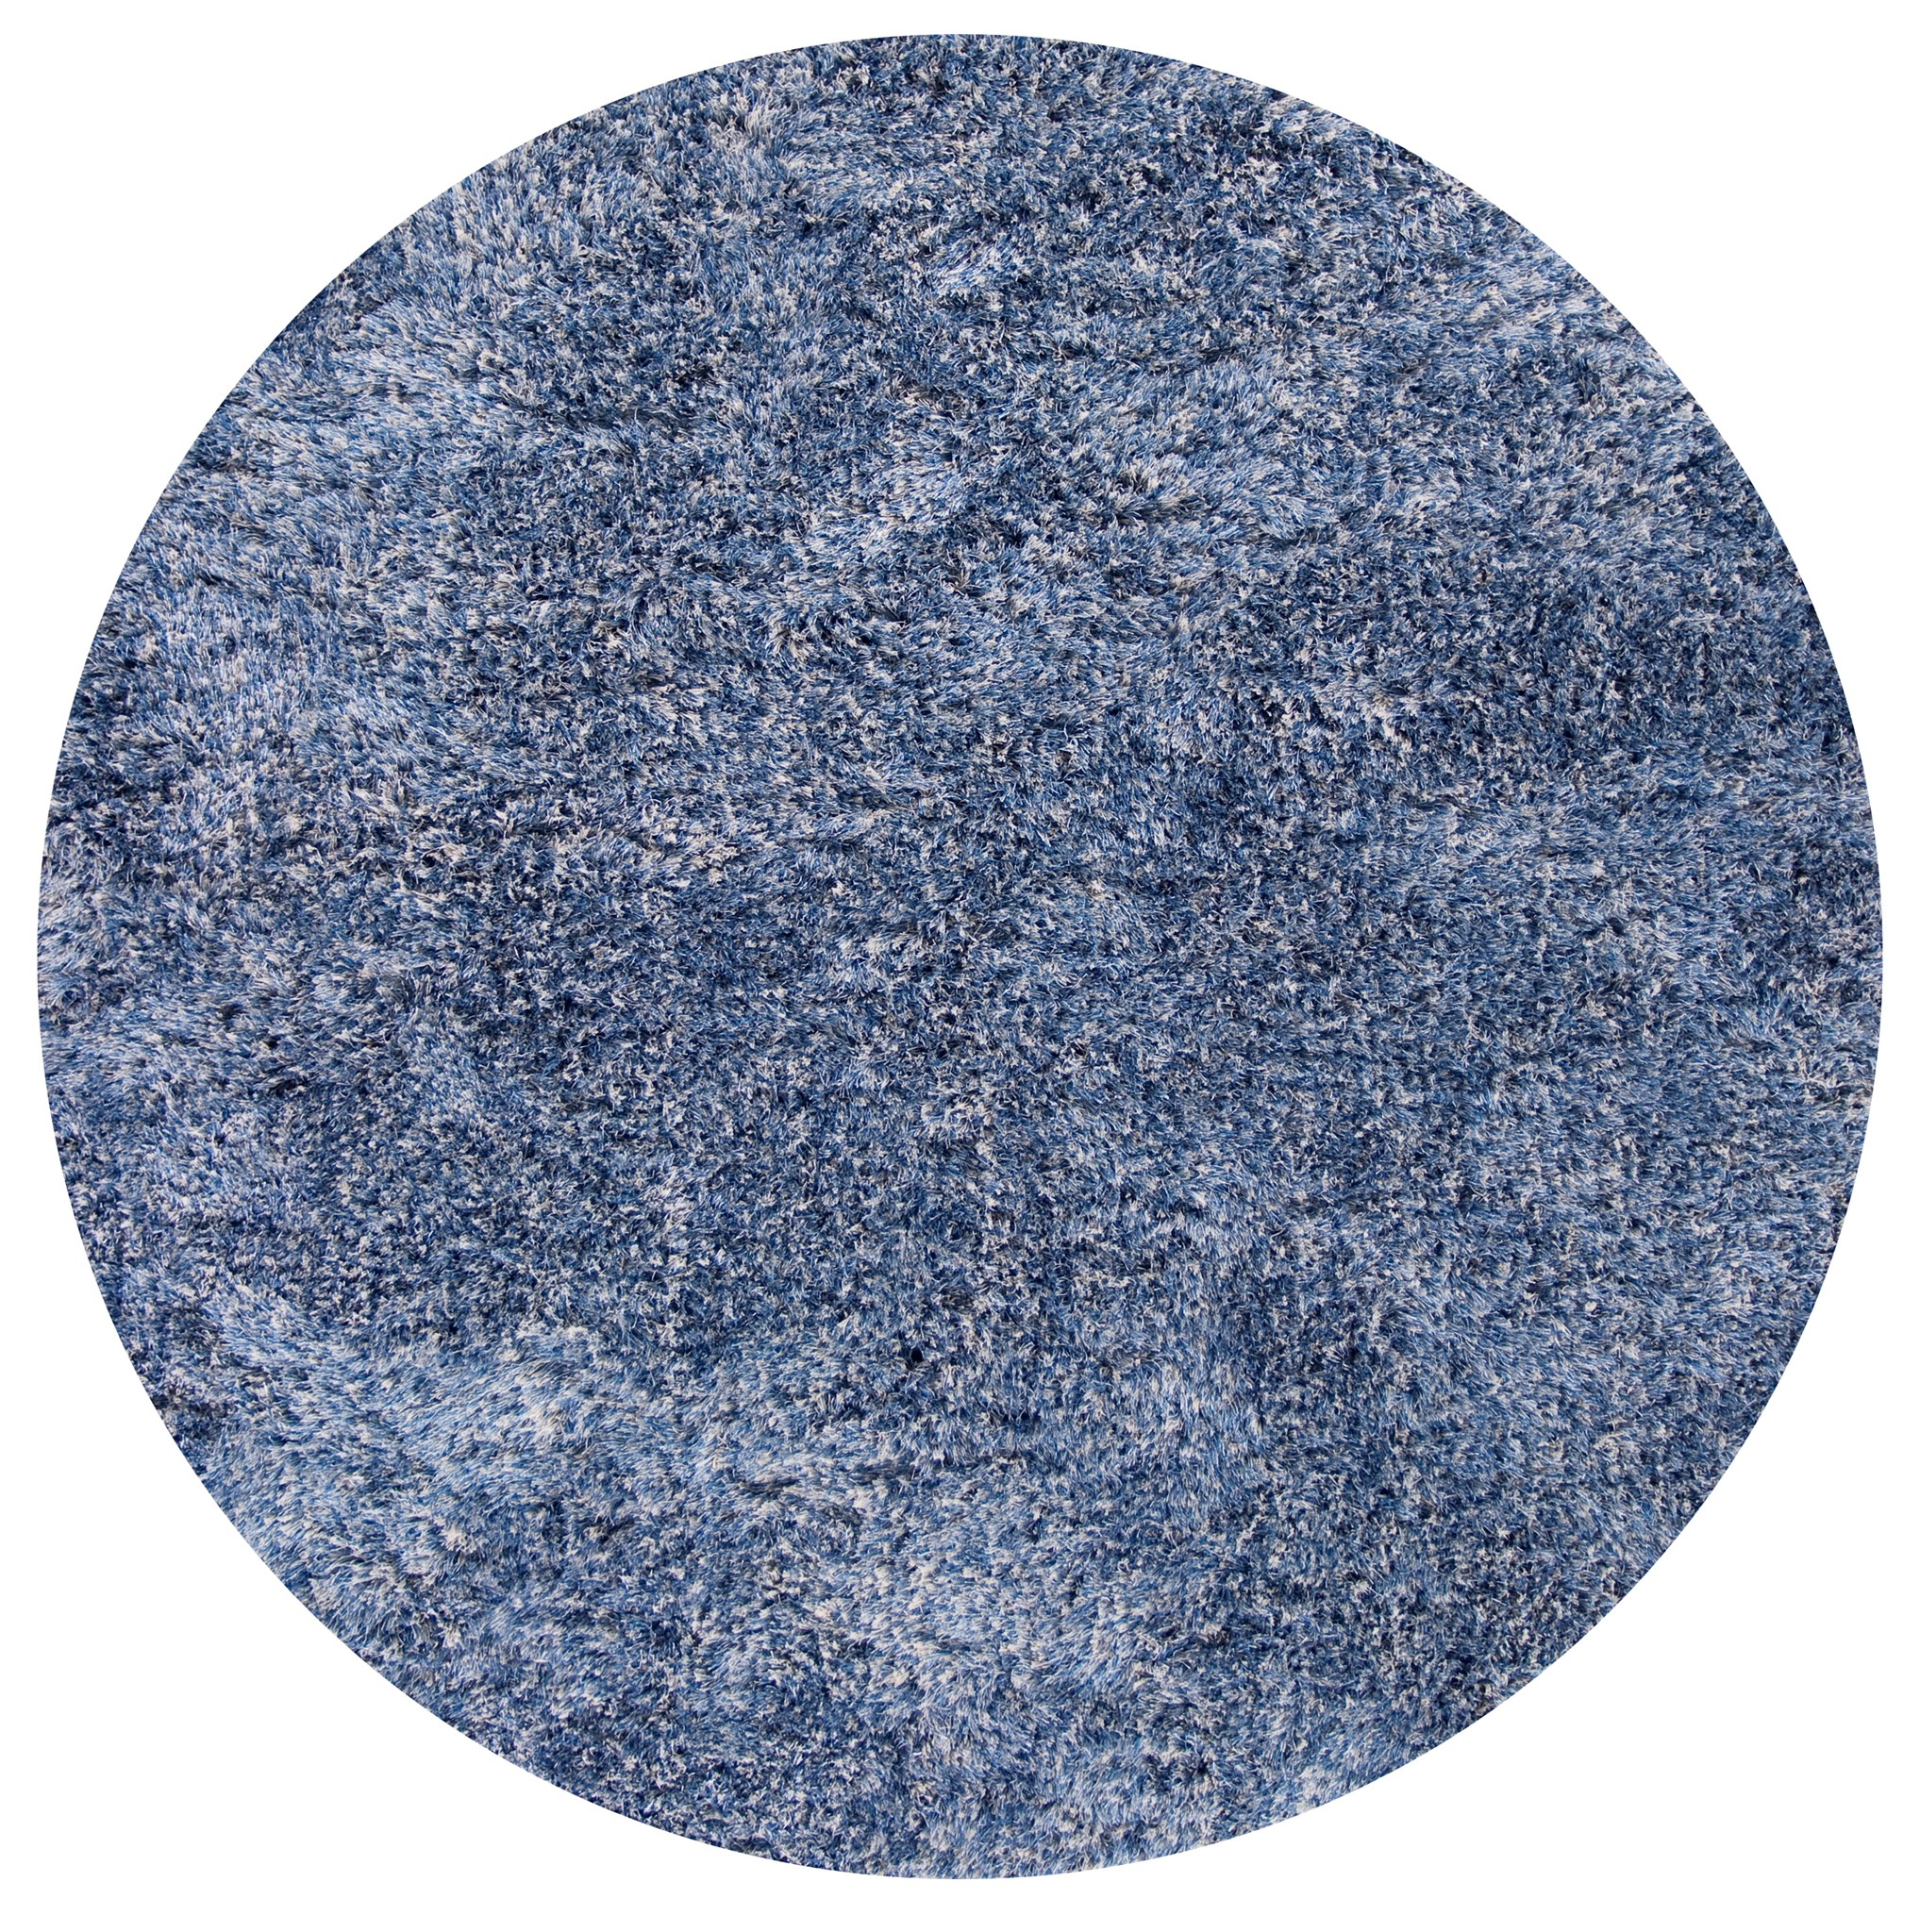 Fina 0554 Denim Heather Silky Shag